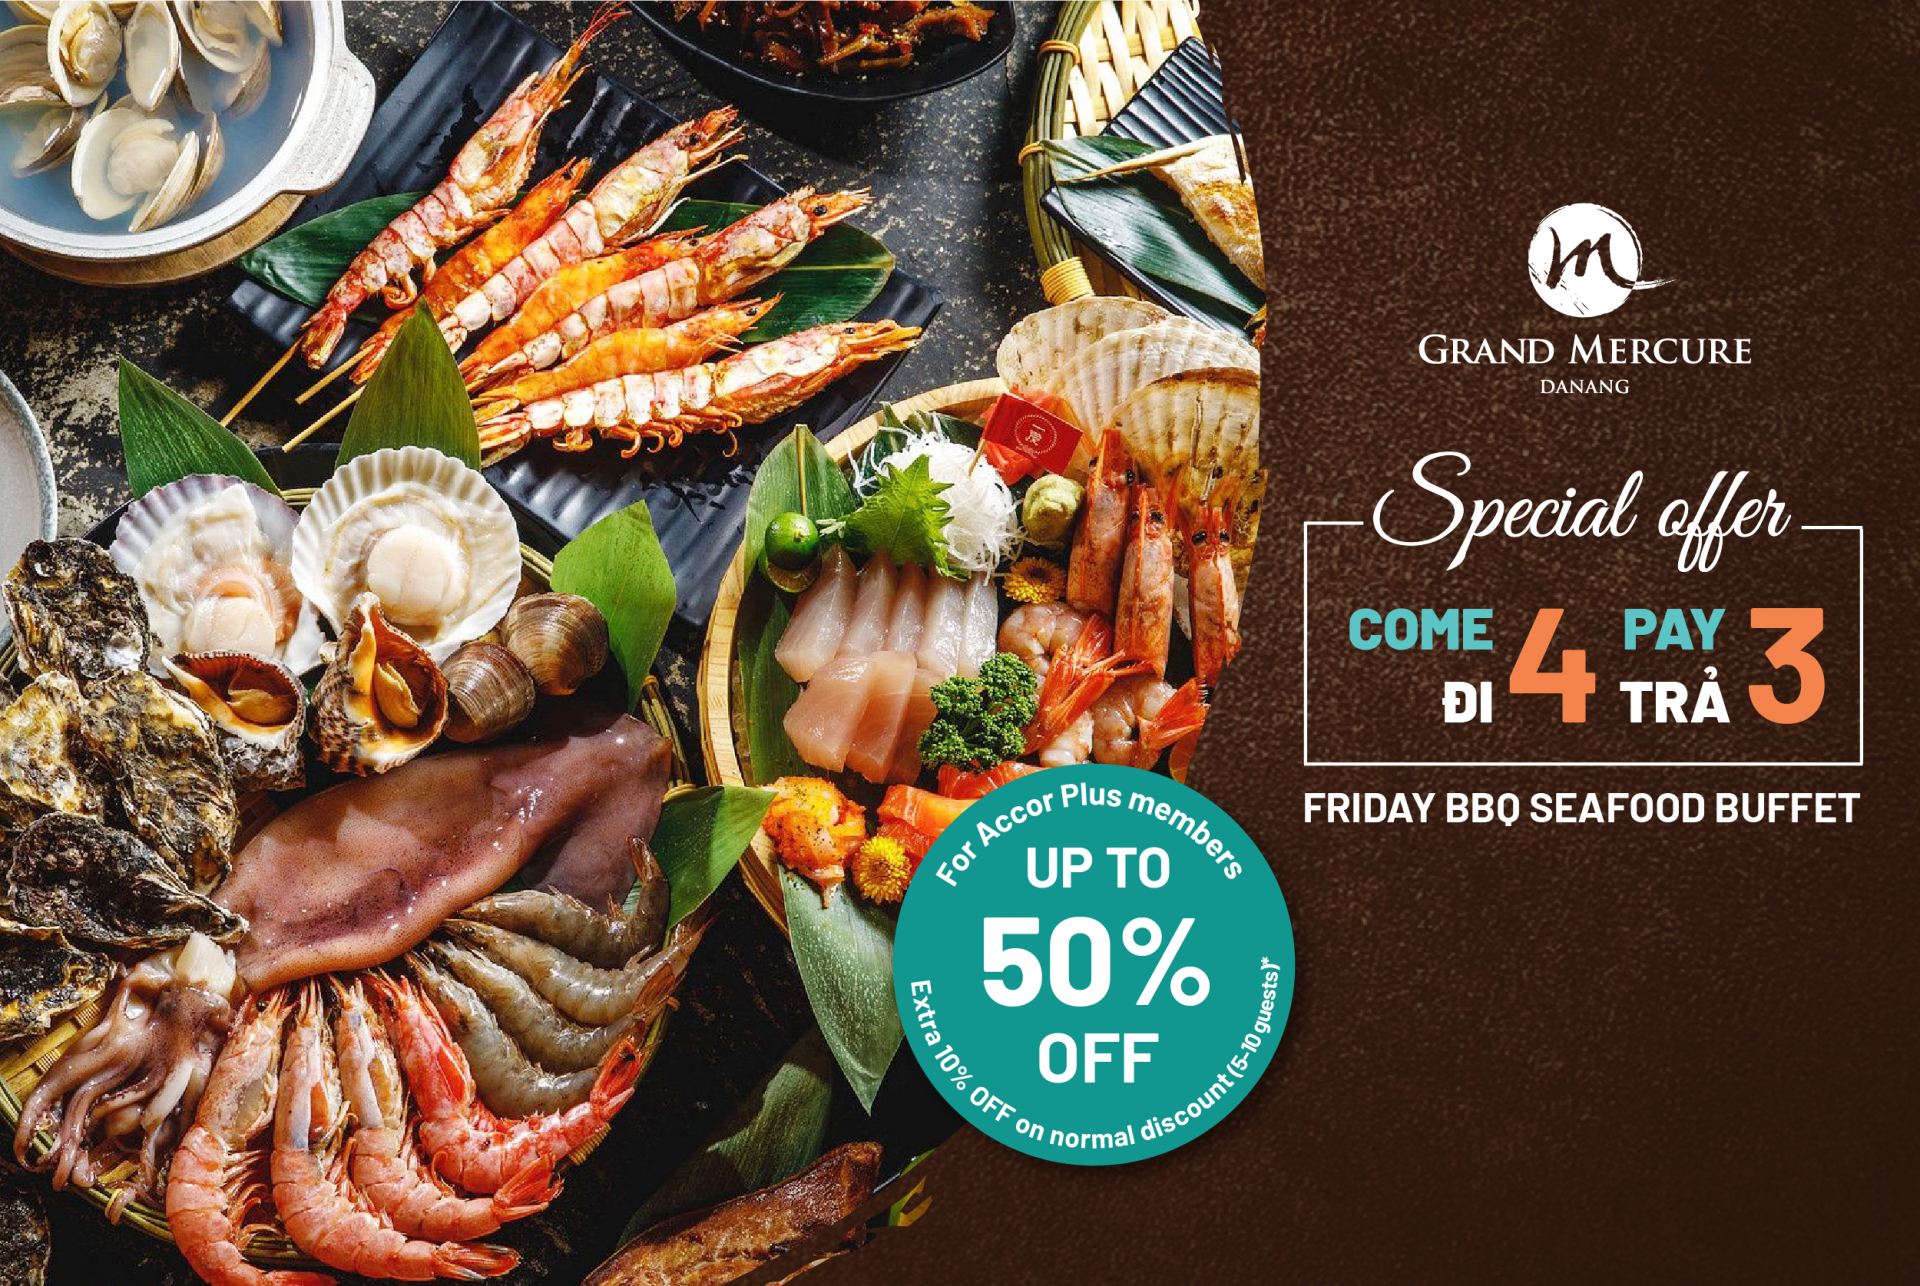 dine 4 pay 3 friday bbq seafood buffet at grand mercure danang